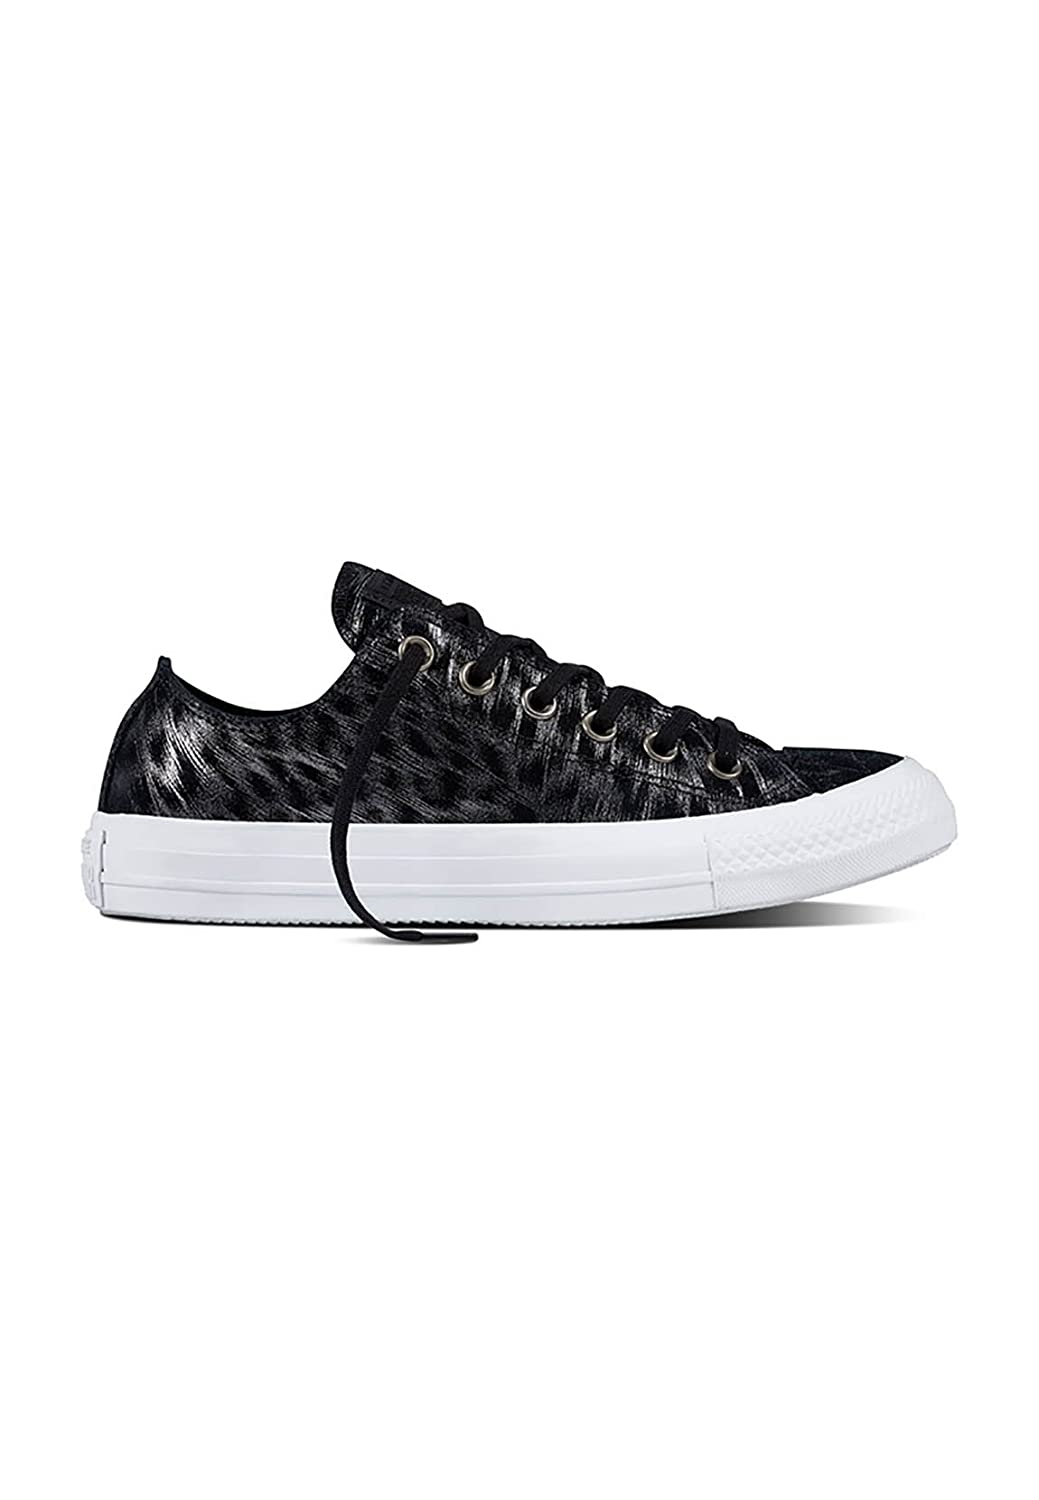 Converse Chucks Low CT AS OX 558000C Schwarz schwarz